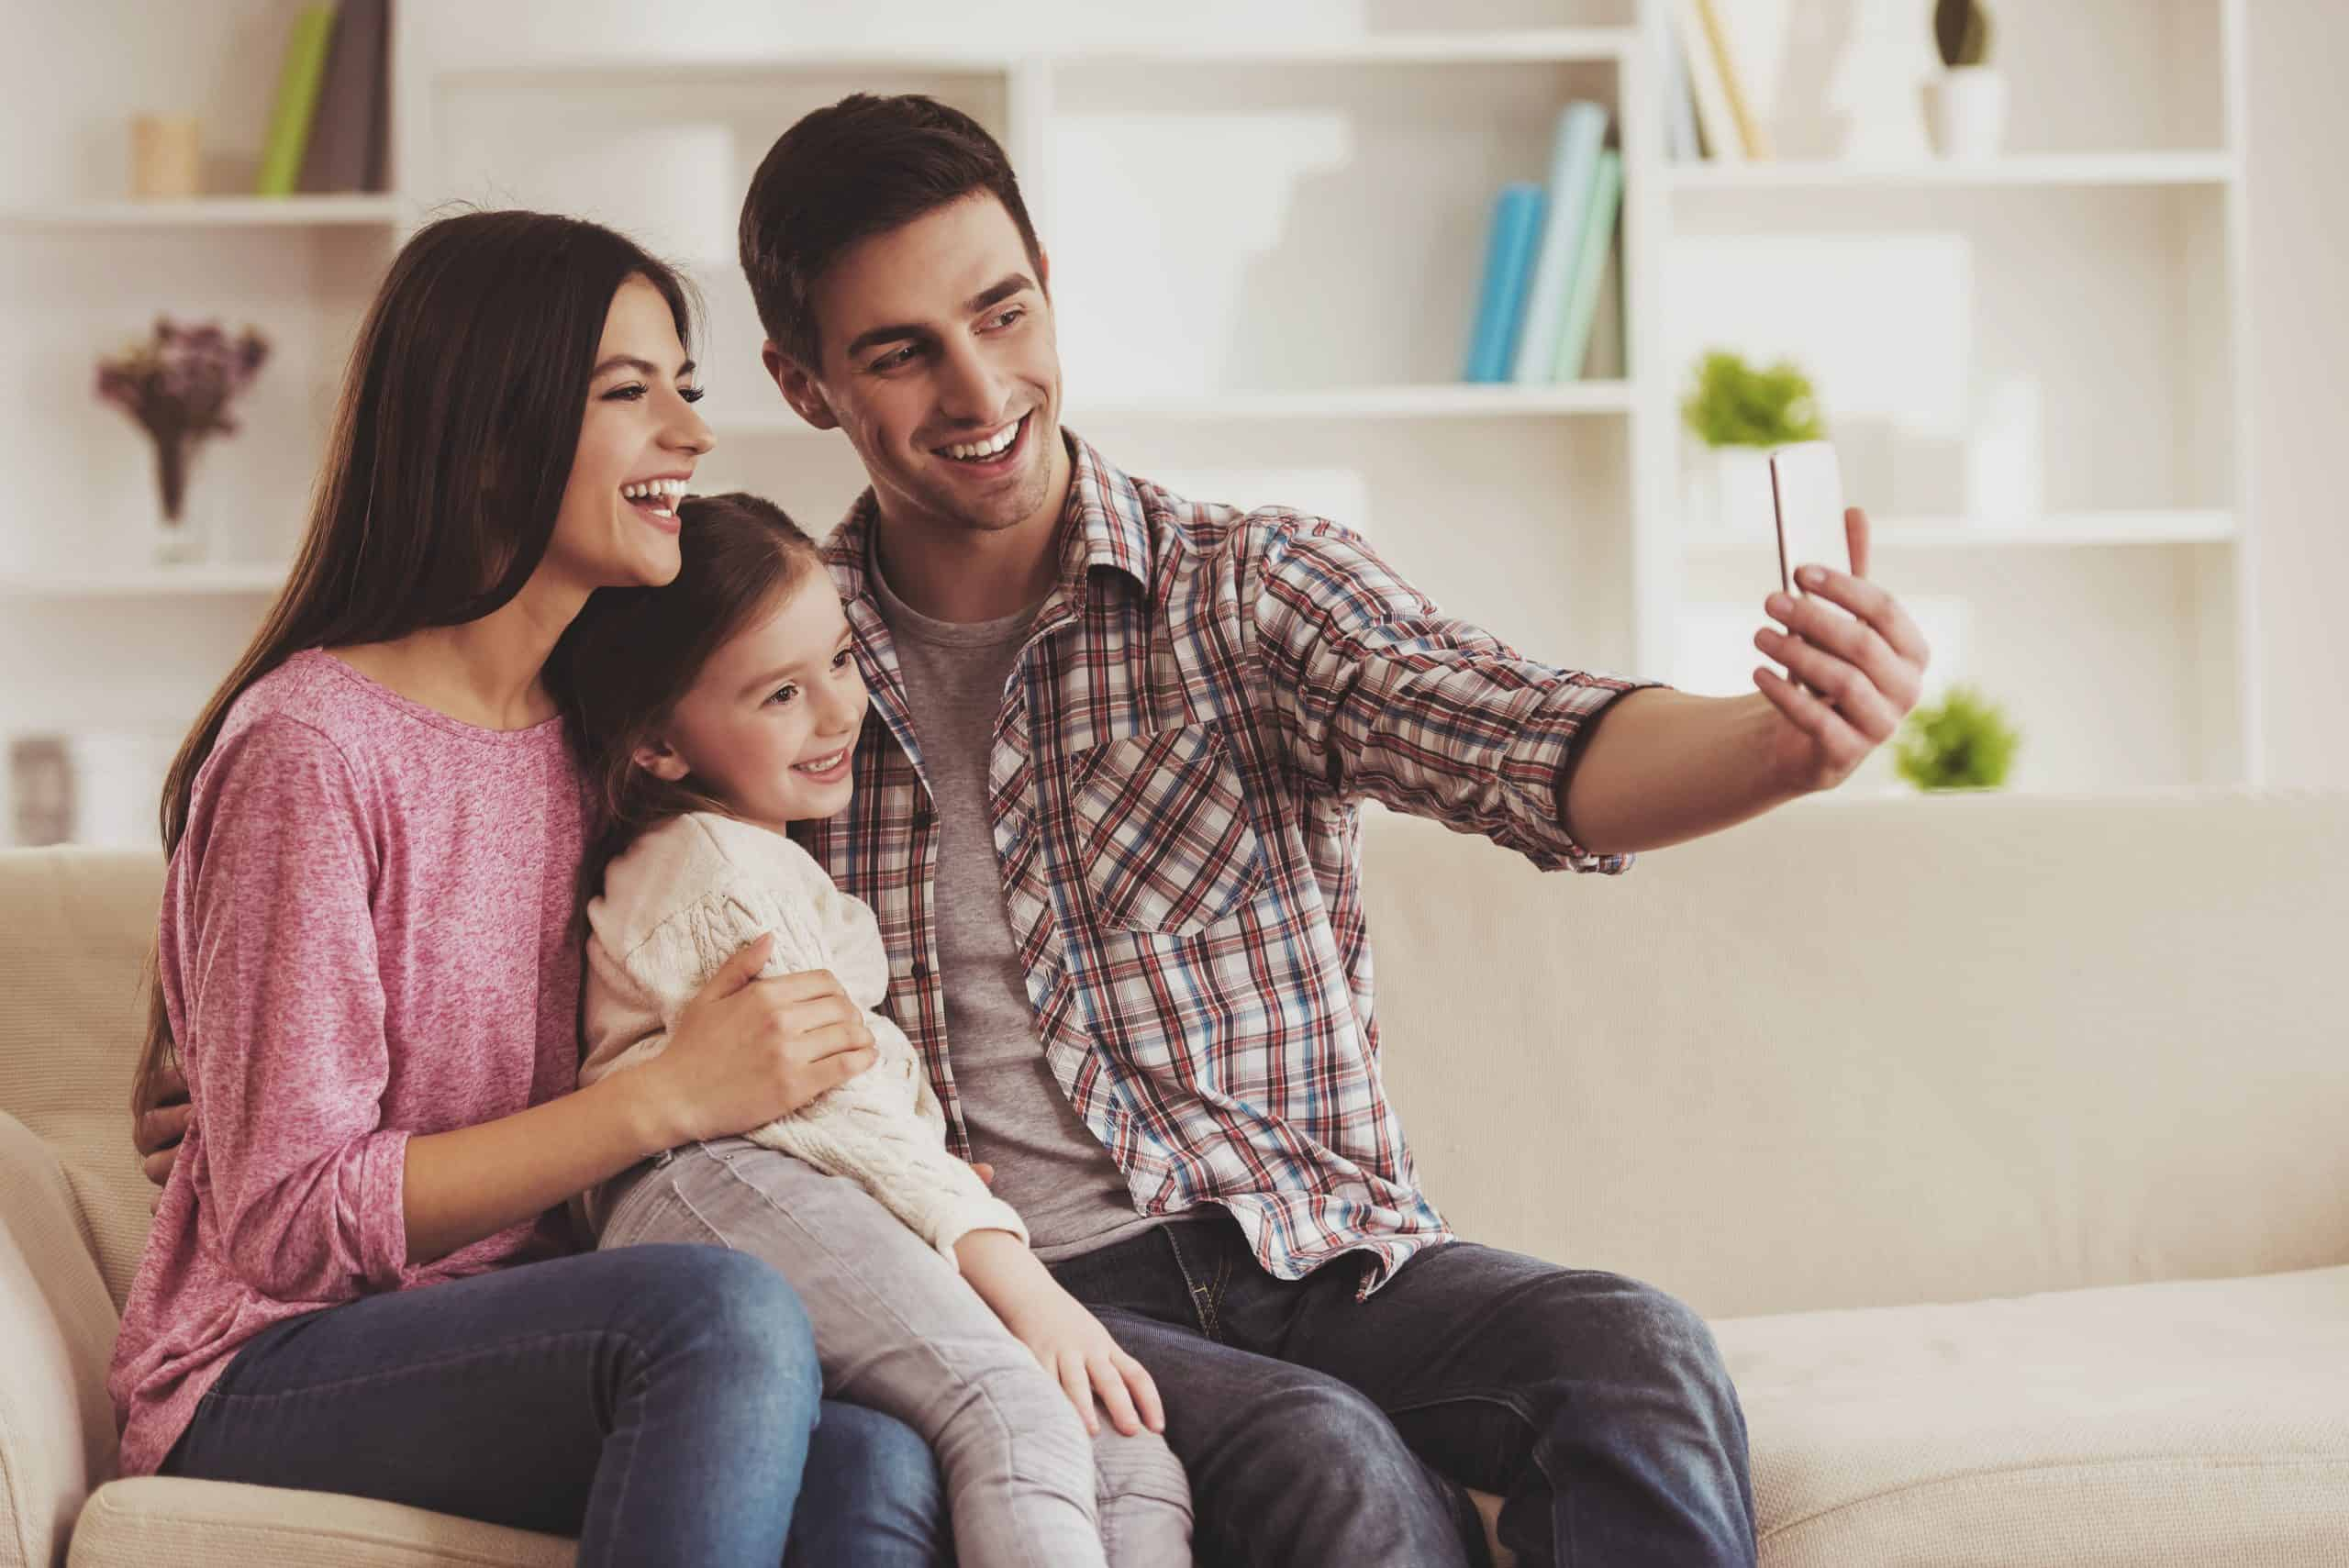 traveling with kids Family Members Making Selfie. Parents and Kid Sitting on Sofa. Portrait at Home. Family Concept. Smiling Parents. Child at Home. Little Daughter. Child in Hugging. People in the Room.